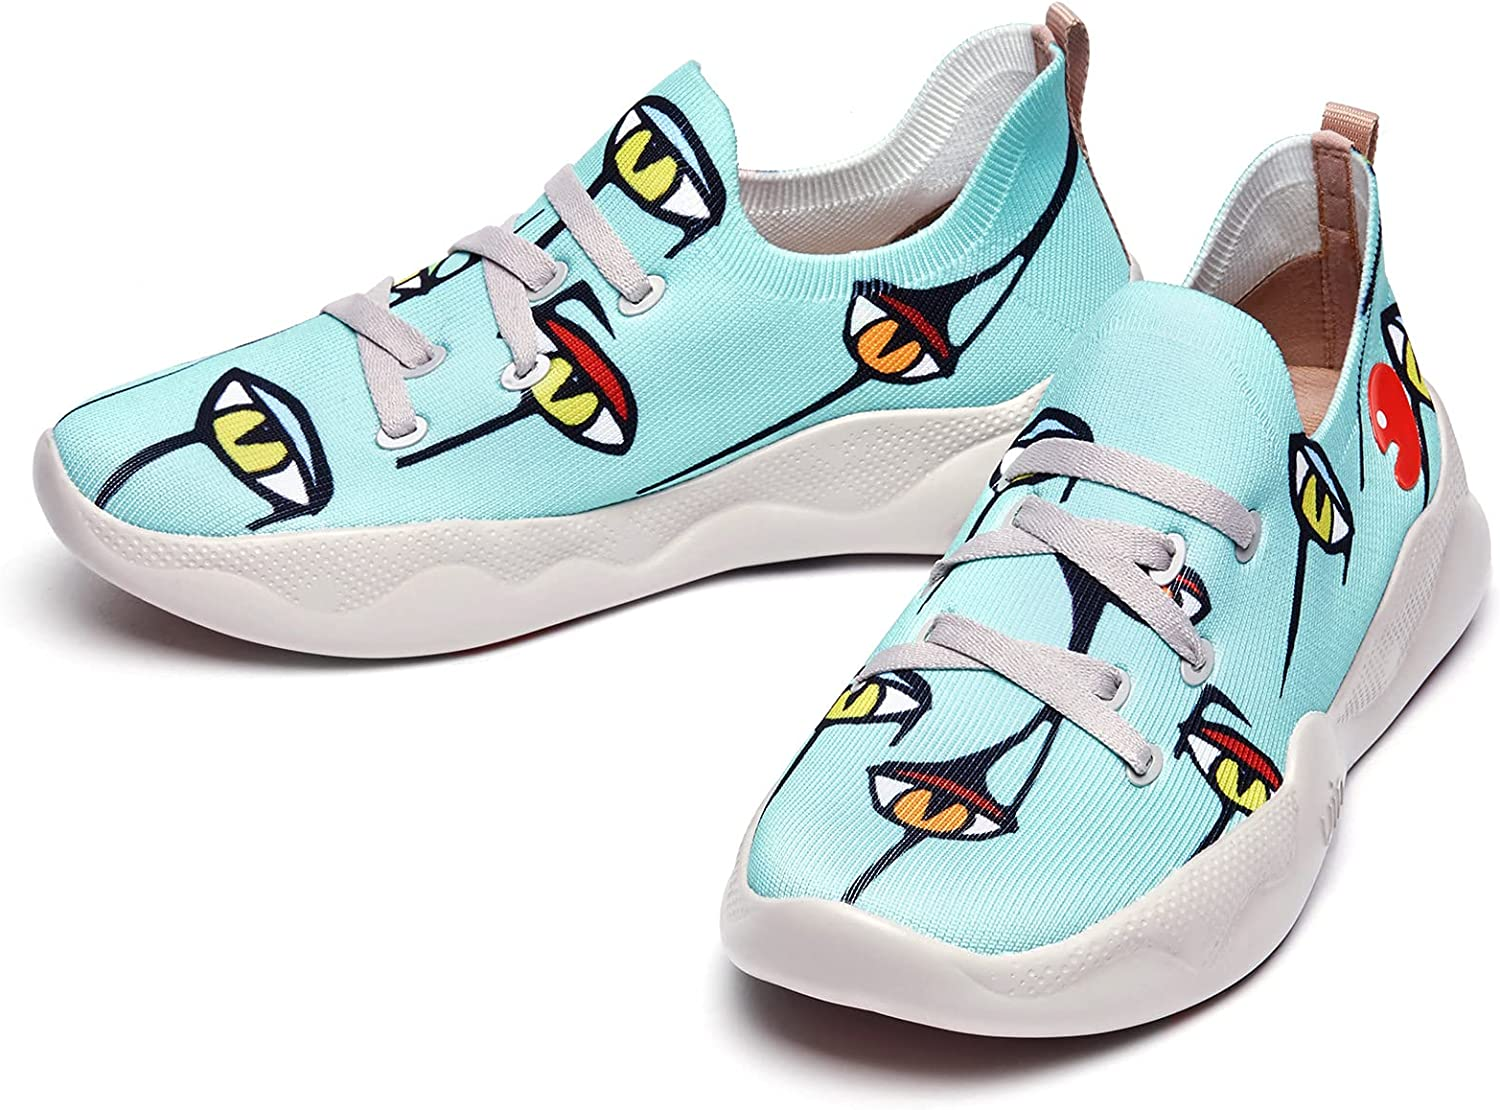 UIN Max 60% OFF Women's Fashion Sneakers Fashionable Lightweight Walking Ons Casual Slip